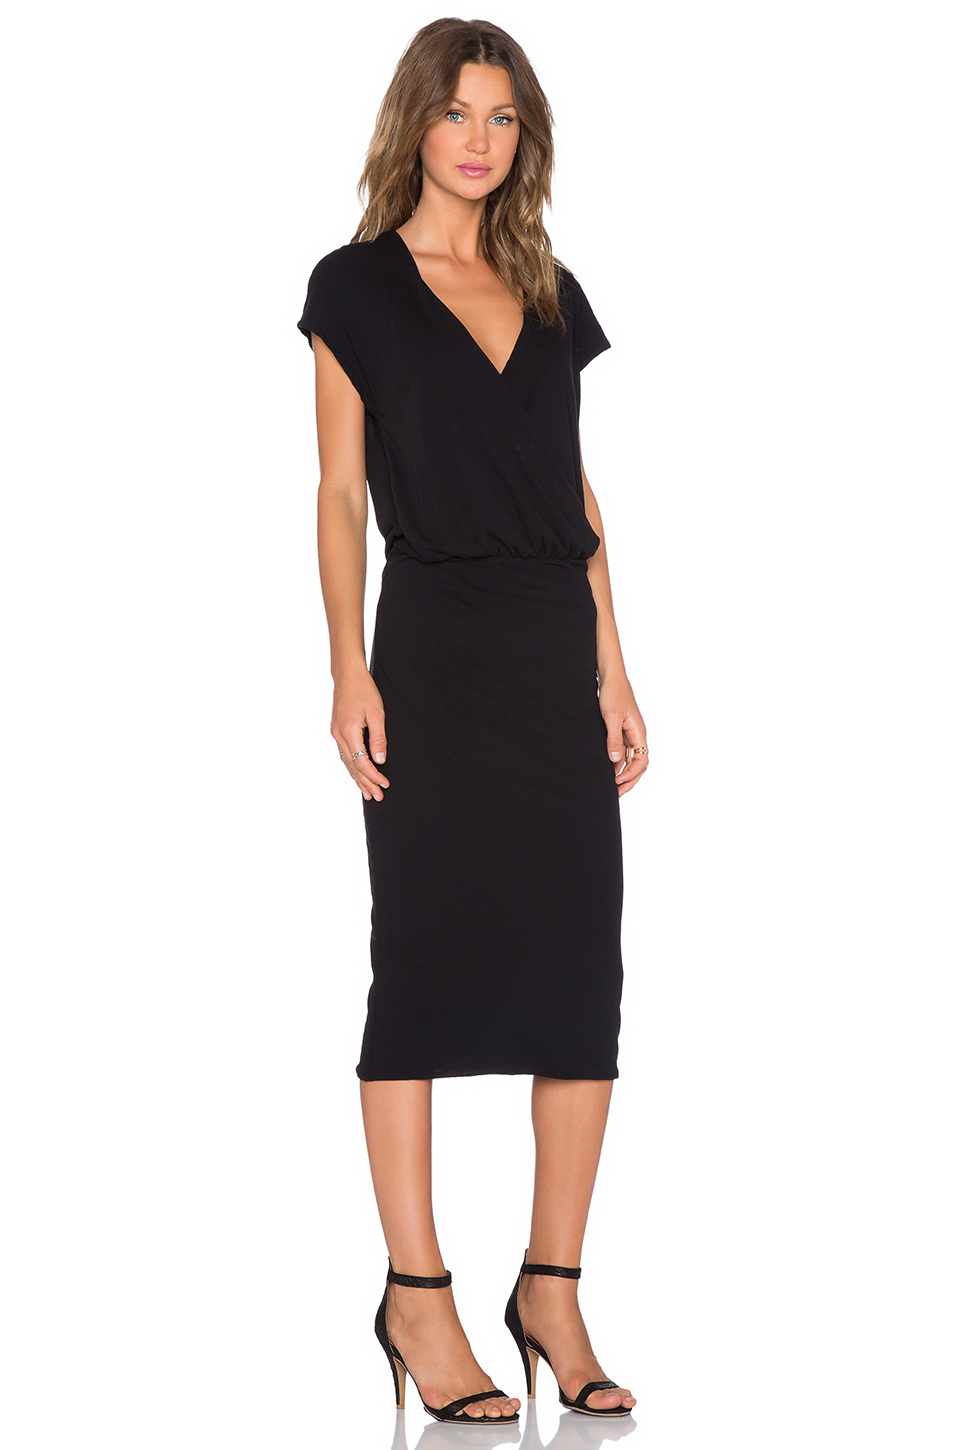 d72e21b726c Lyst - James Perse Sleeveless Wrap Dress in Black